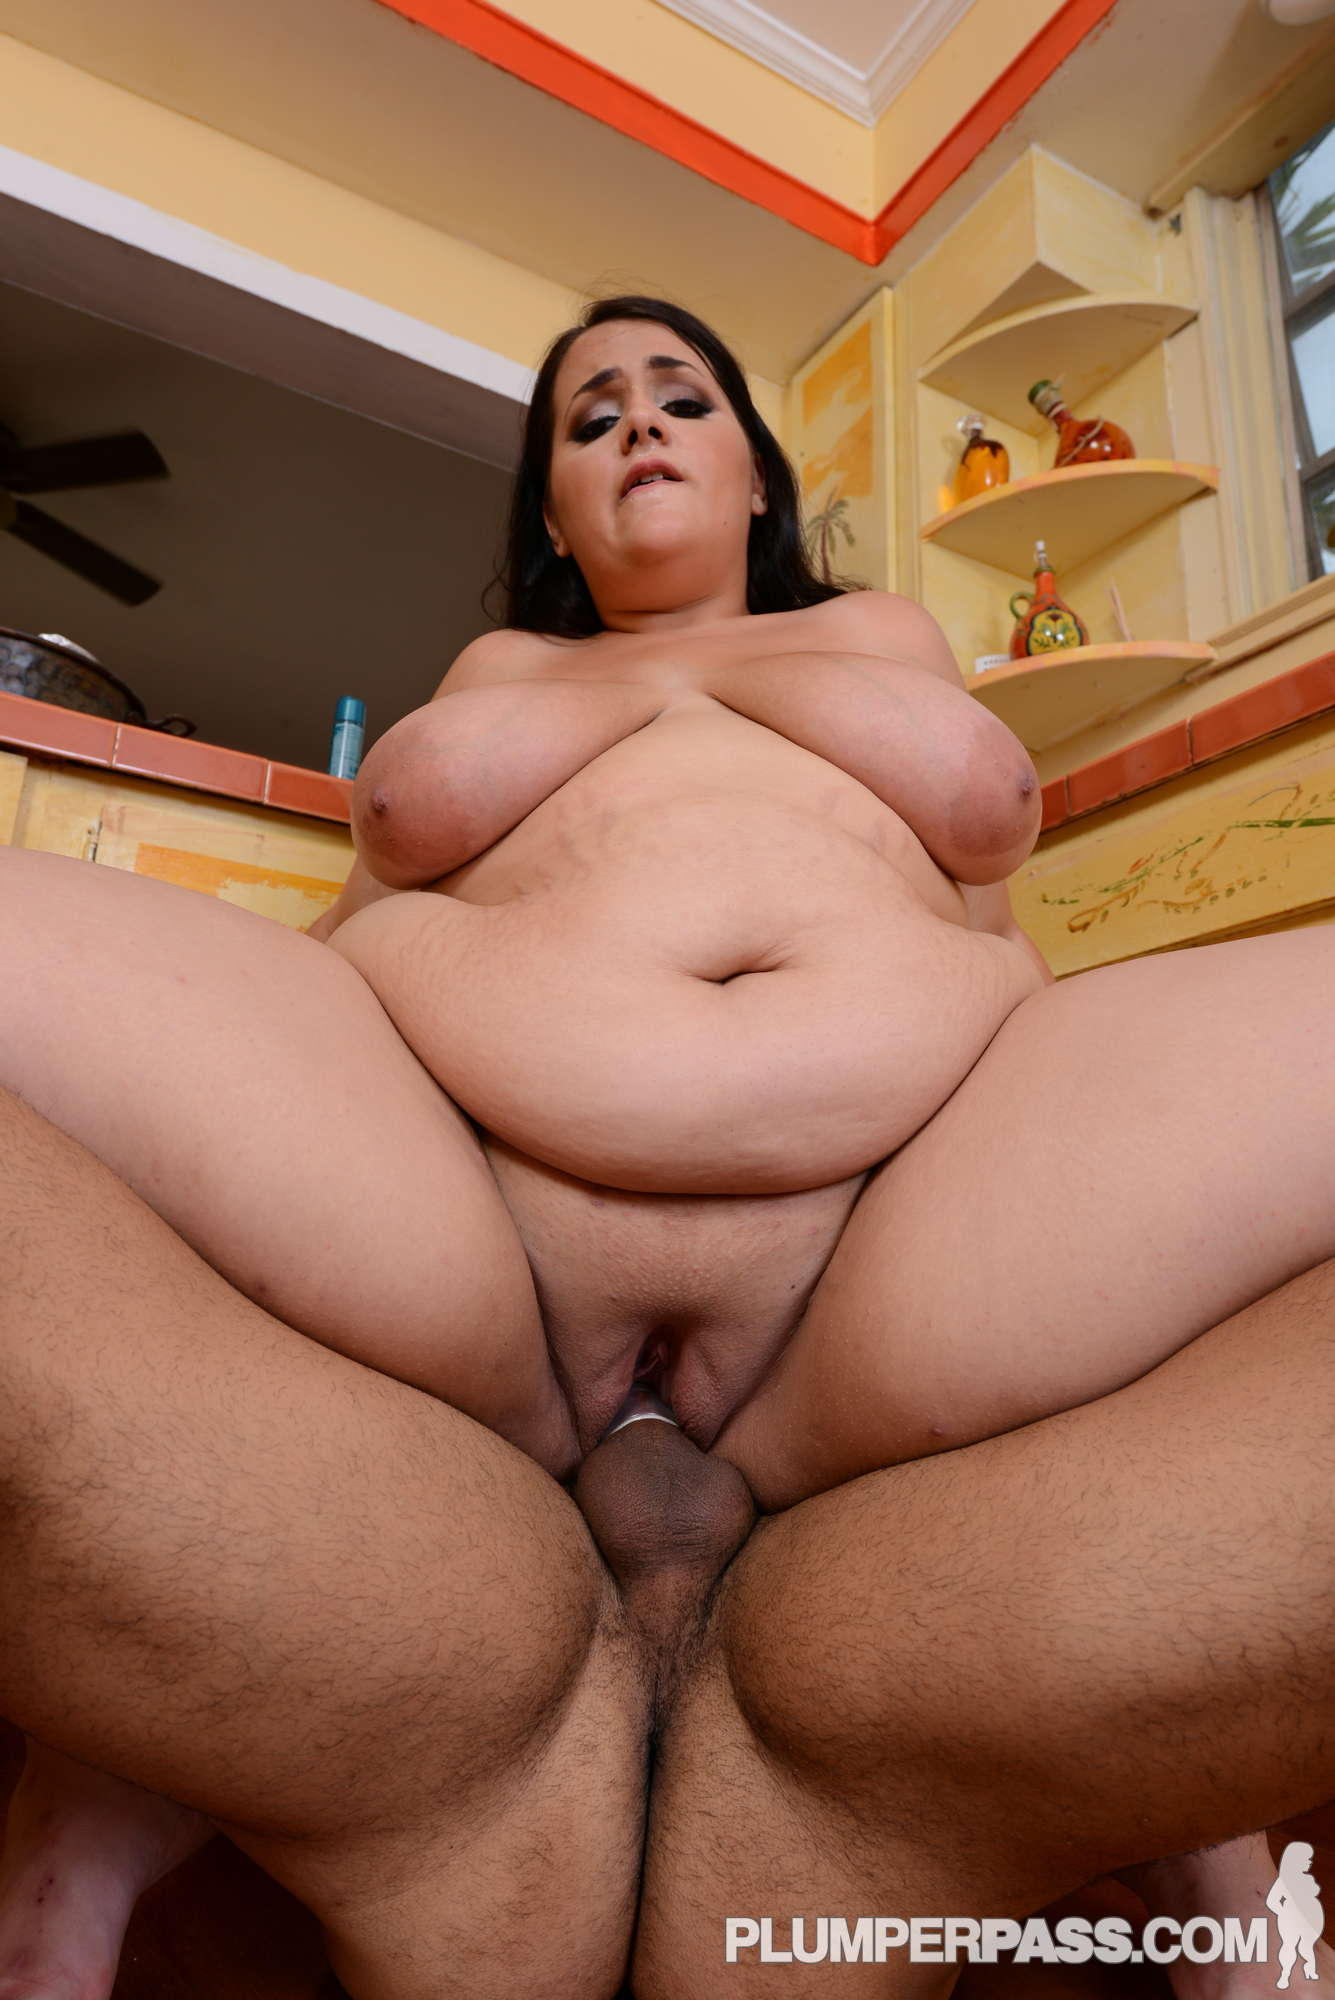 fat girl anal - find your soul mate on our website.